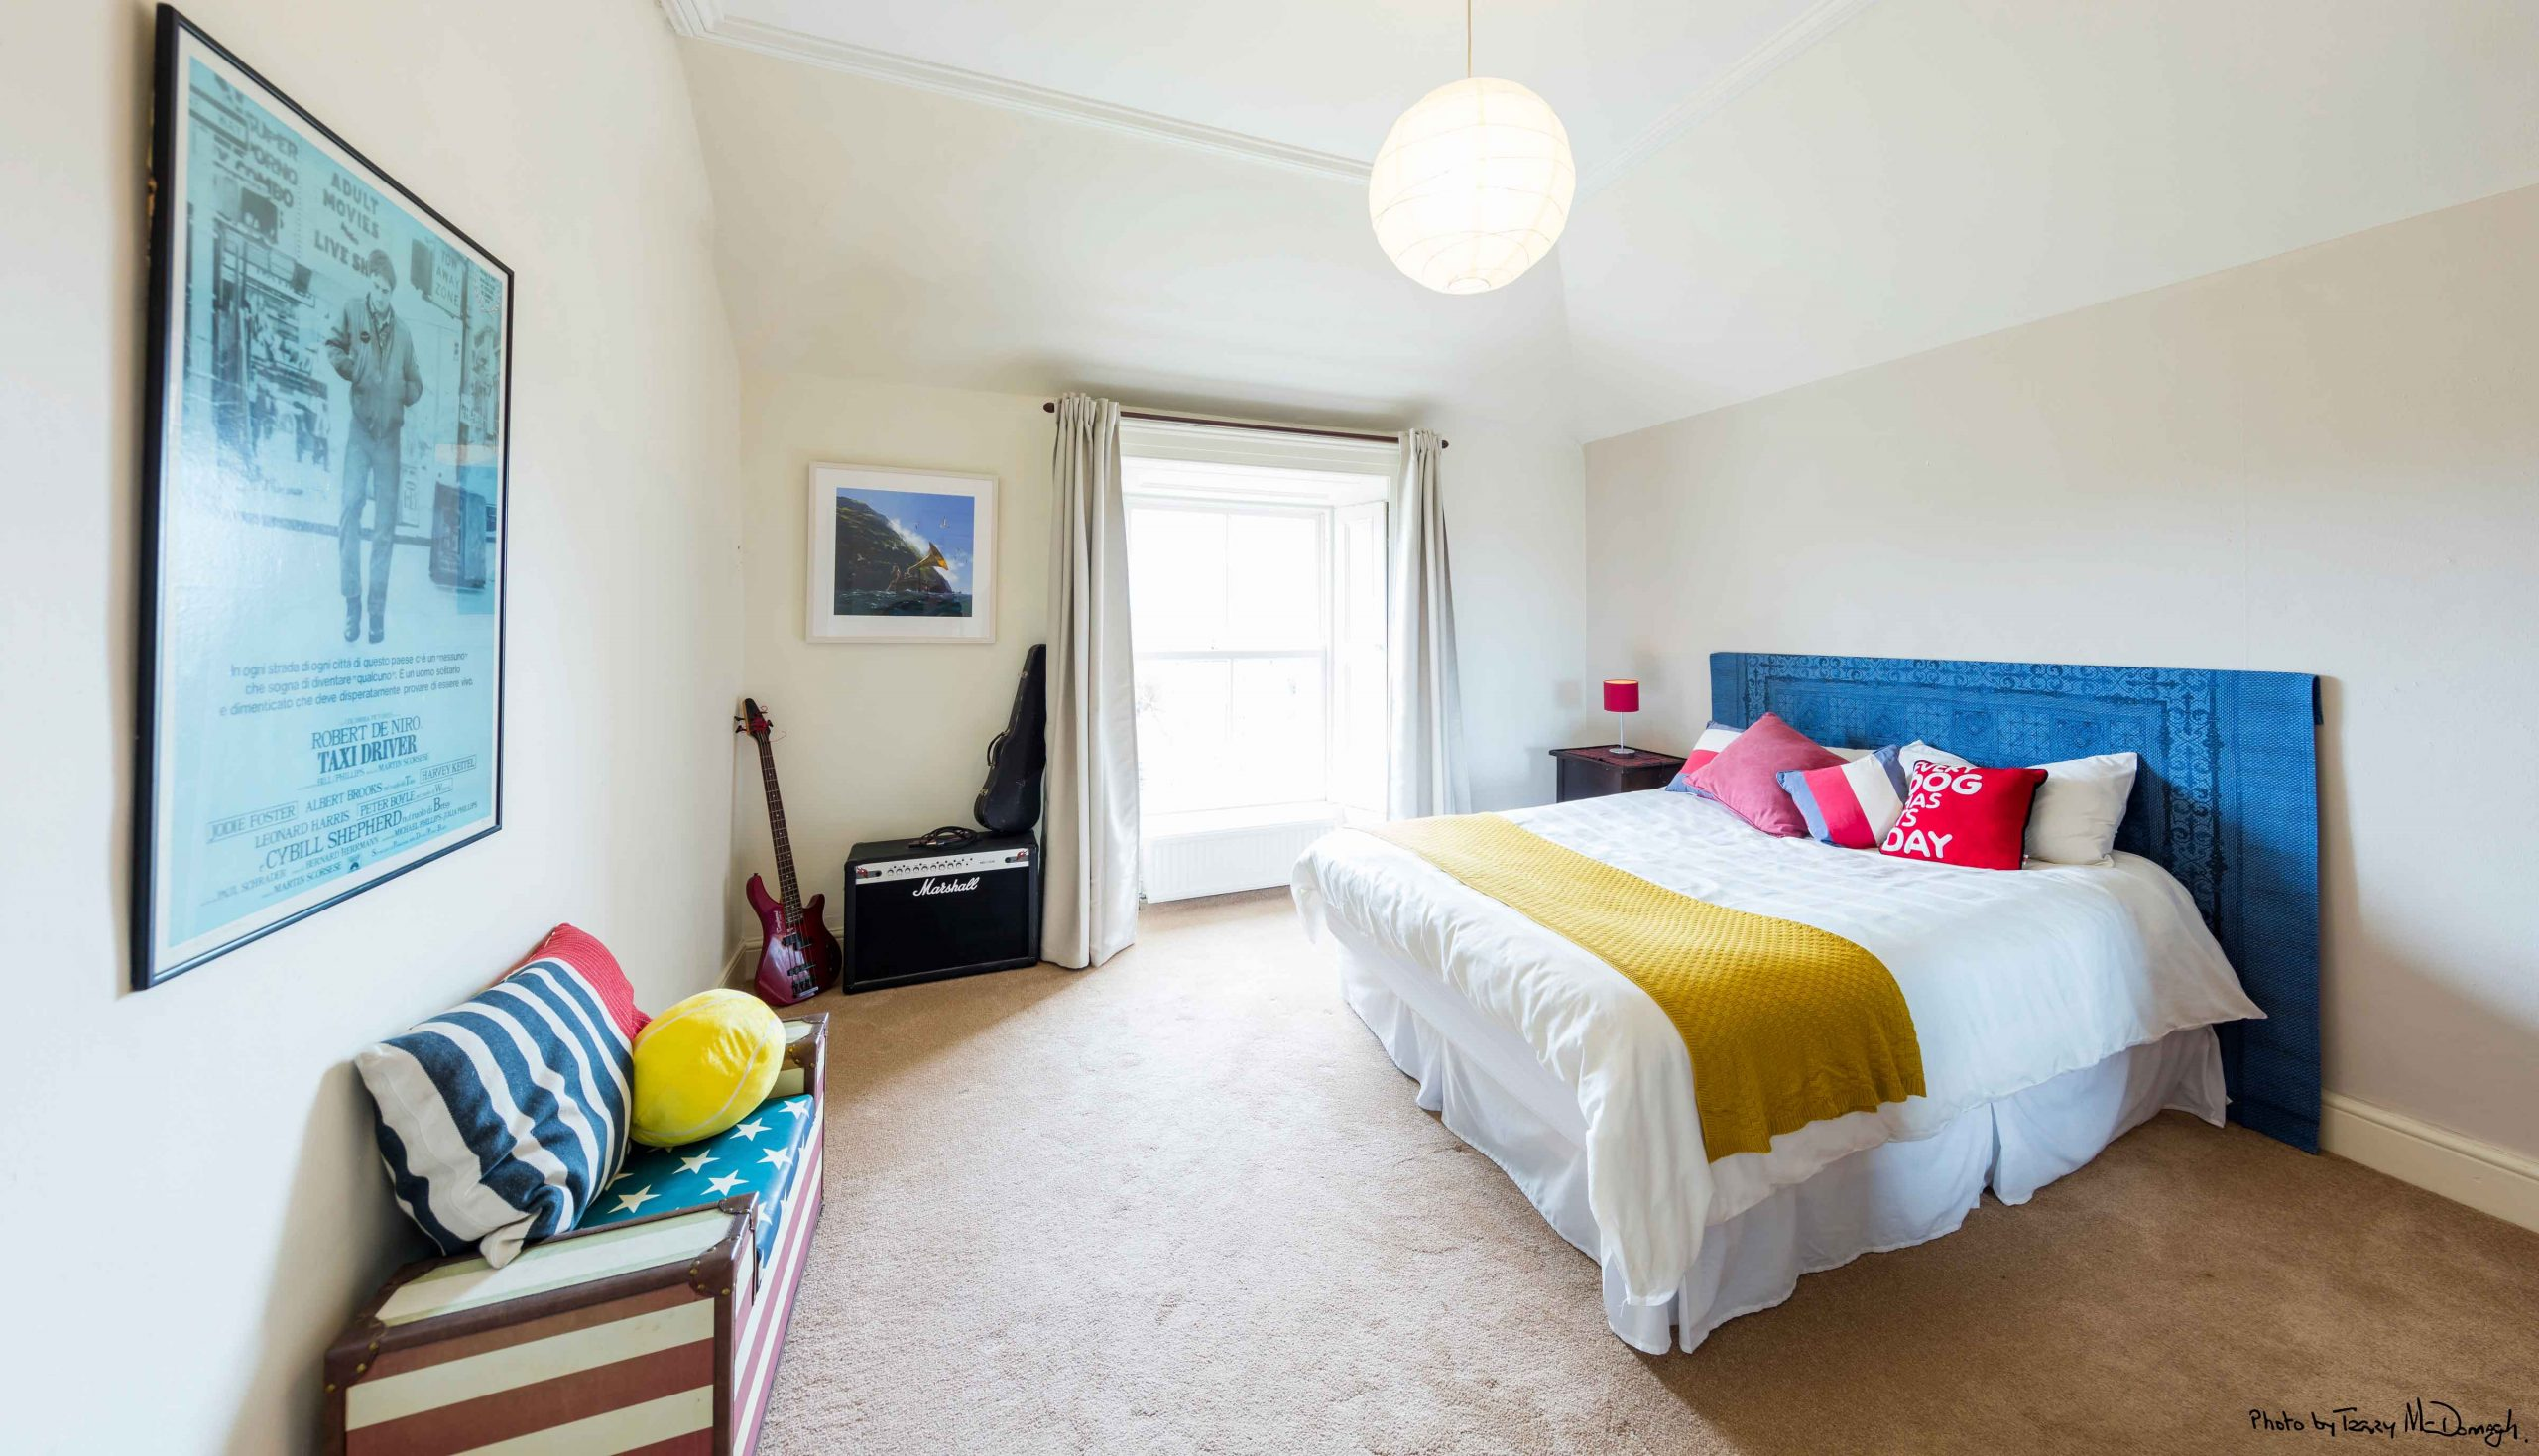 South Dublin Bedroom Painters and Decorators in Glenageary Painted by Impressions Painters and Decorators